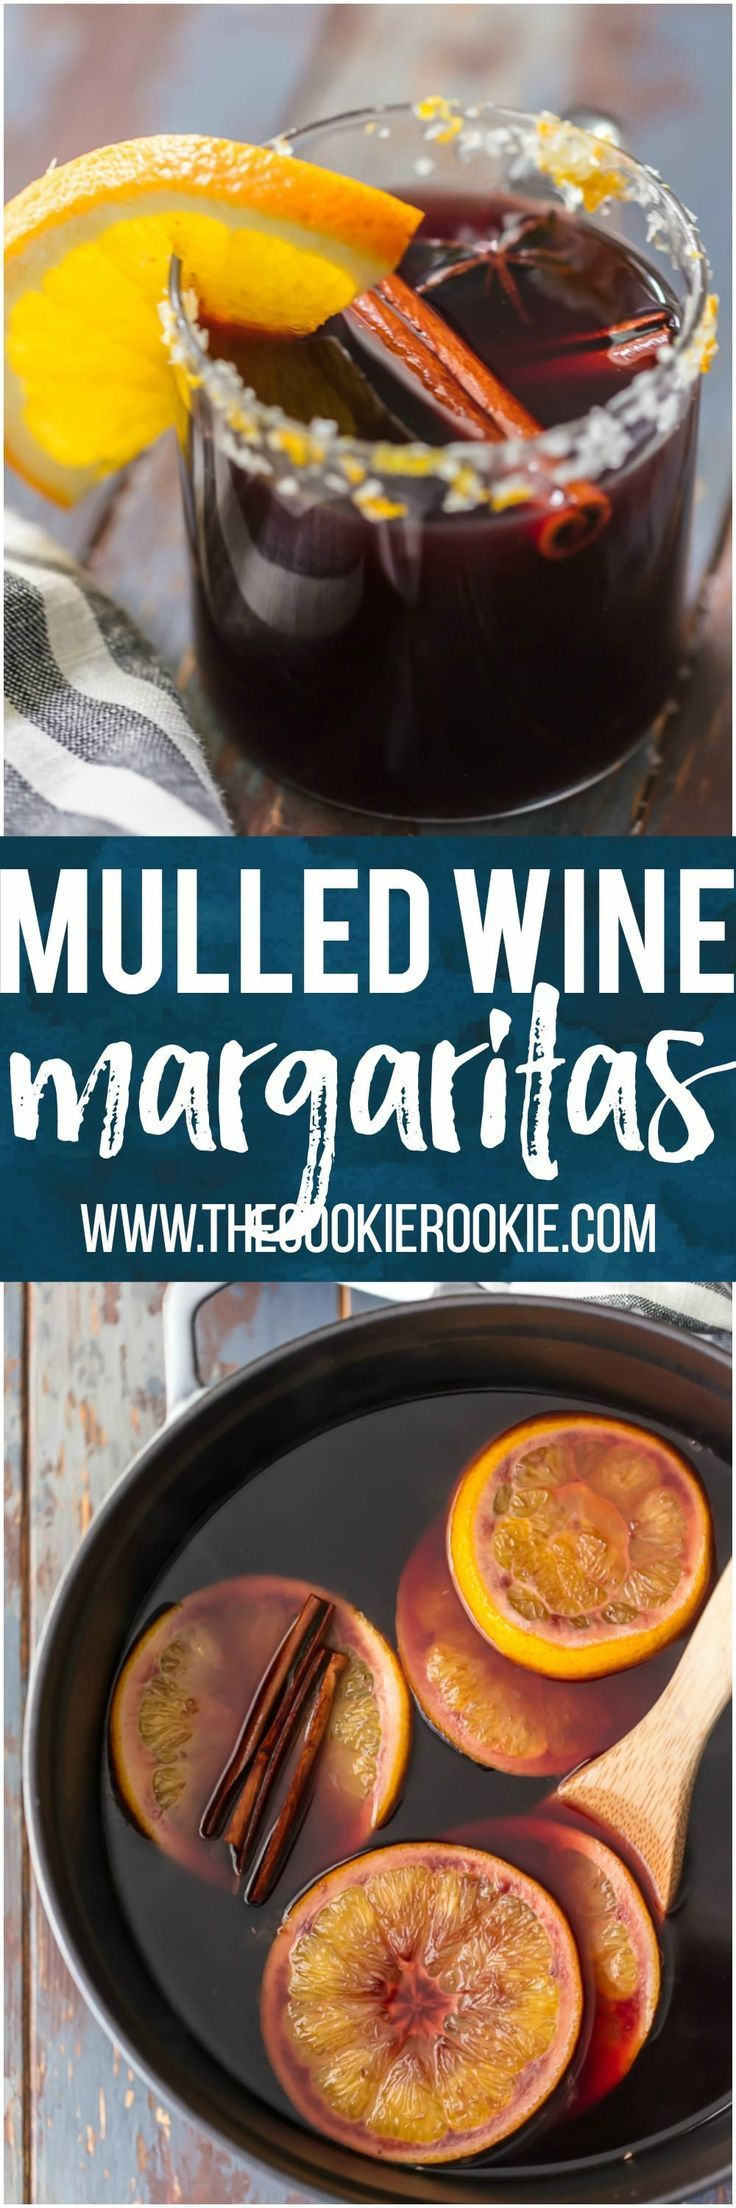 These SPICED MULLED WINE MARGARITAS are so fun, festive, and unique. This favorite holiday beverage has complex flavors and warms the soul. The ultimate Christmas cocktail. #mulledwine #wine #cocktail #christmas #holiday #tequila via @beckygallhardin